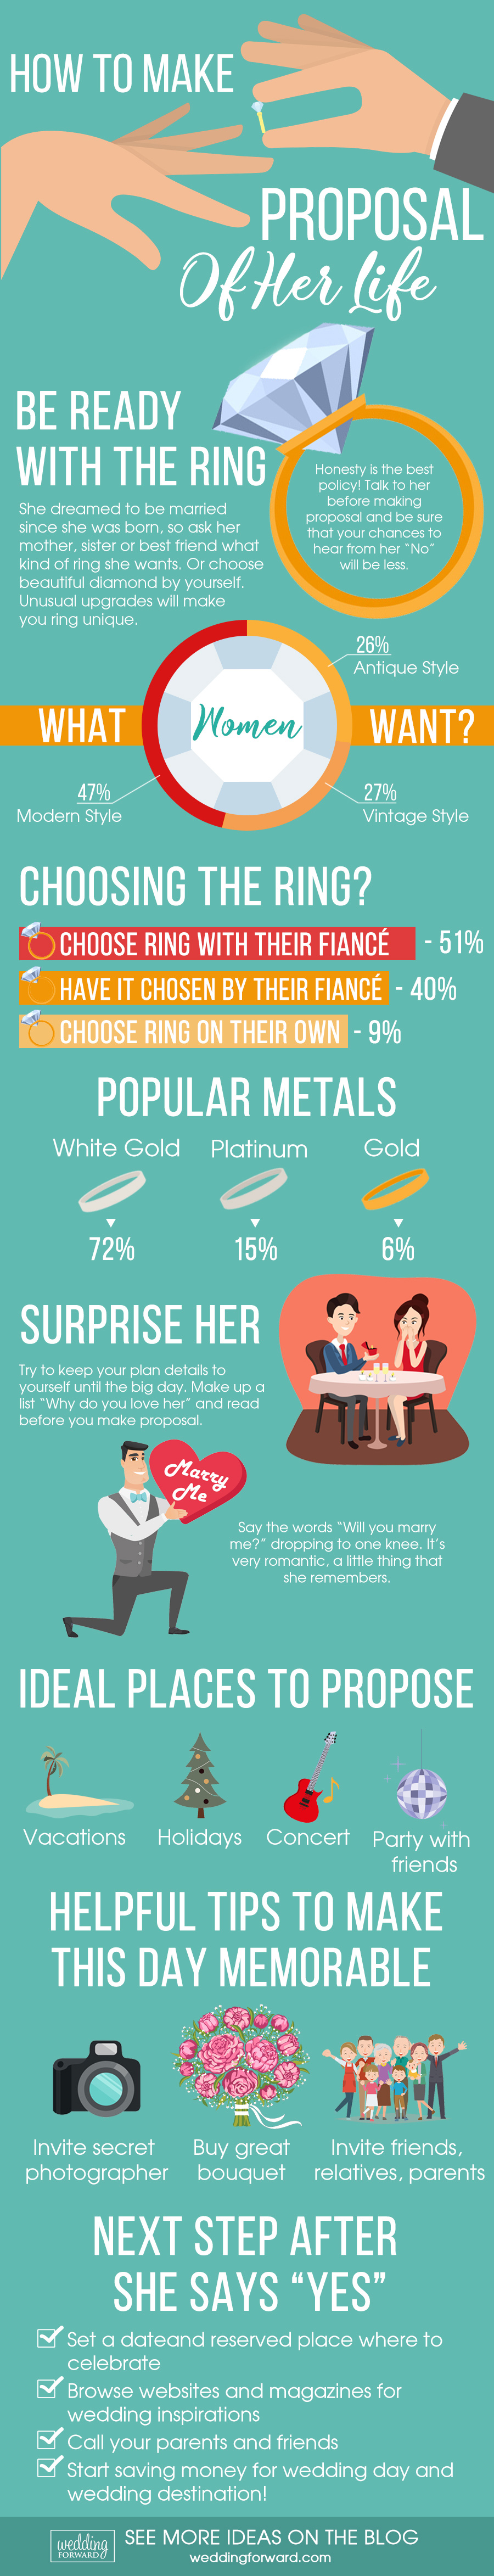 marriage proposal infographics how to make proposal of her life